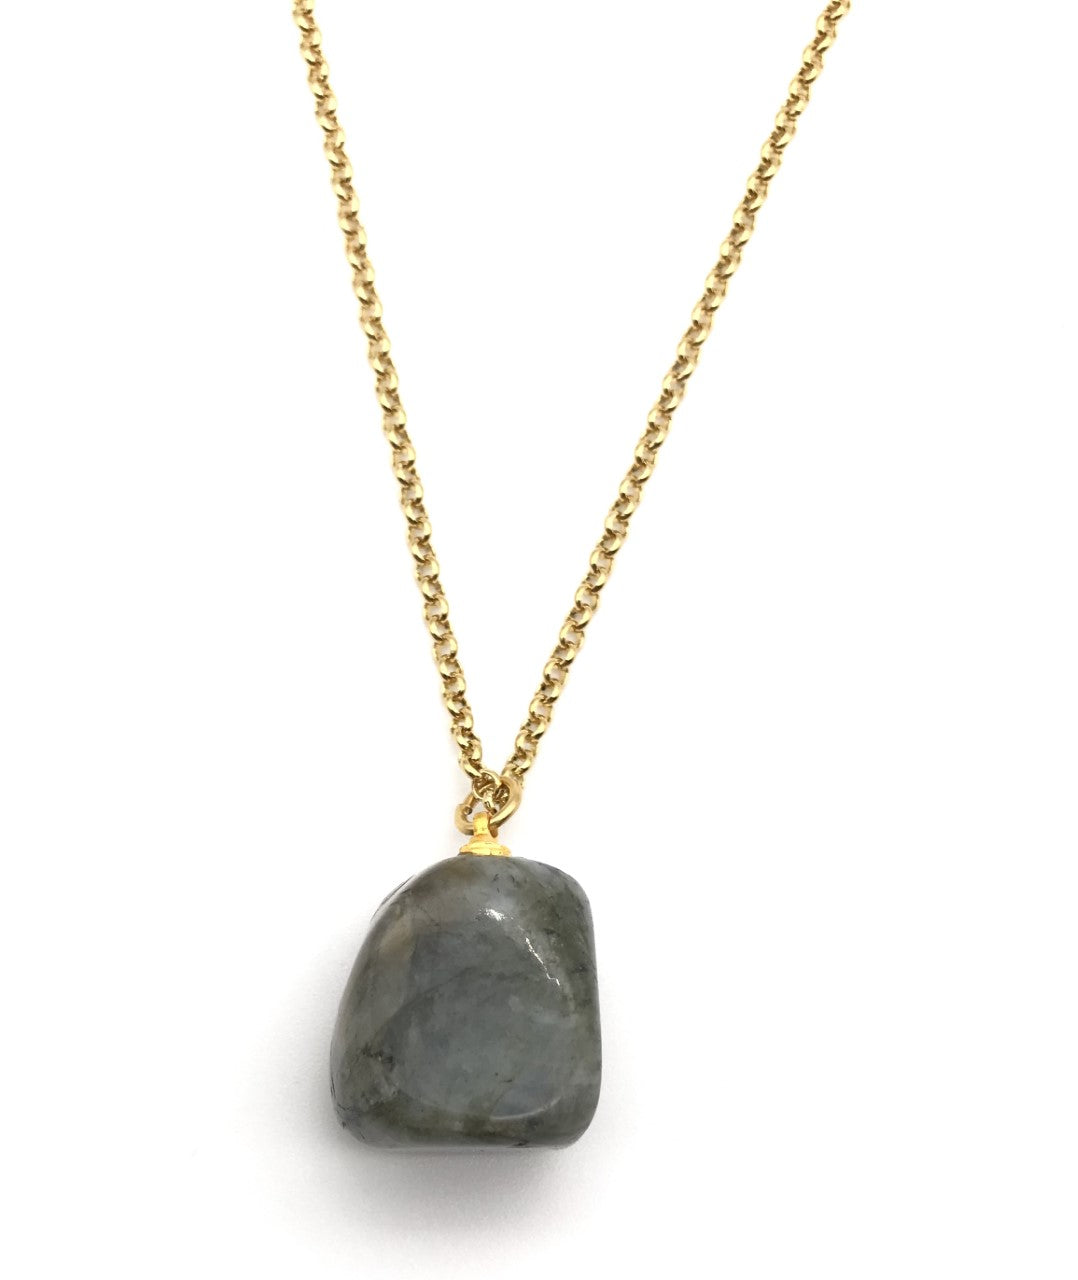 Natural Gold Labradorite Gemstone Crystal Pendant Necklace